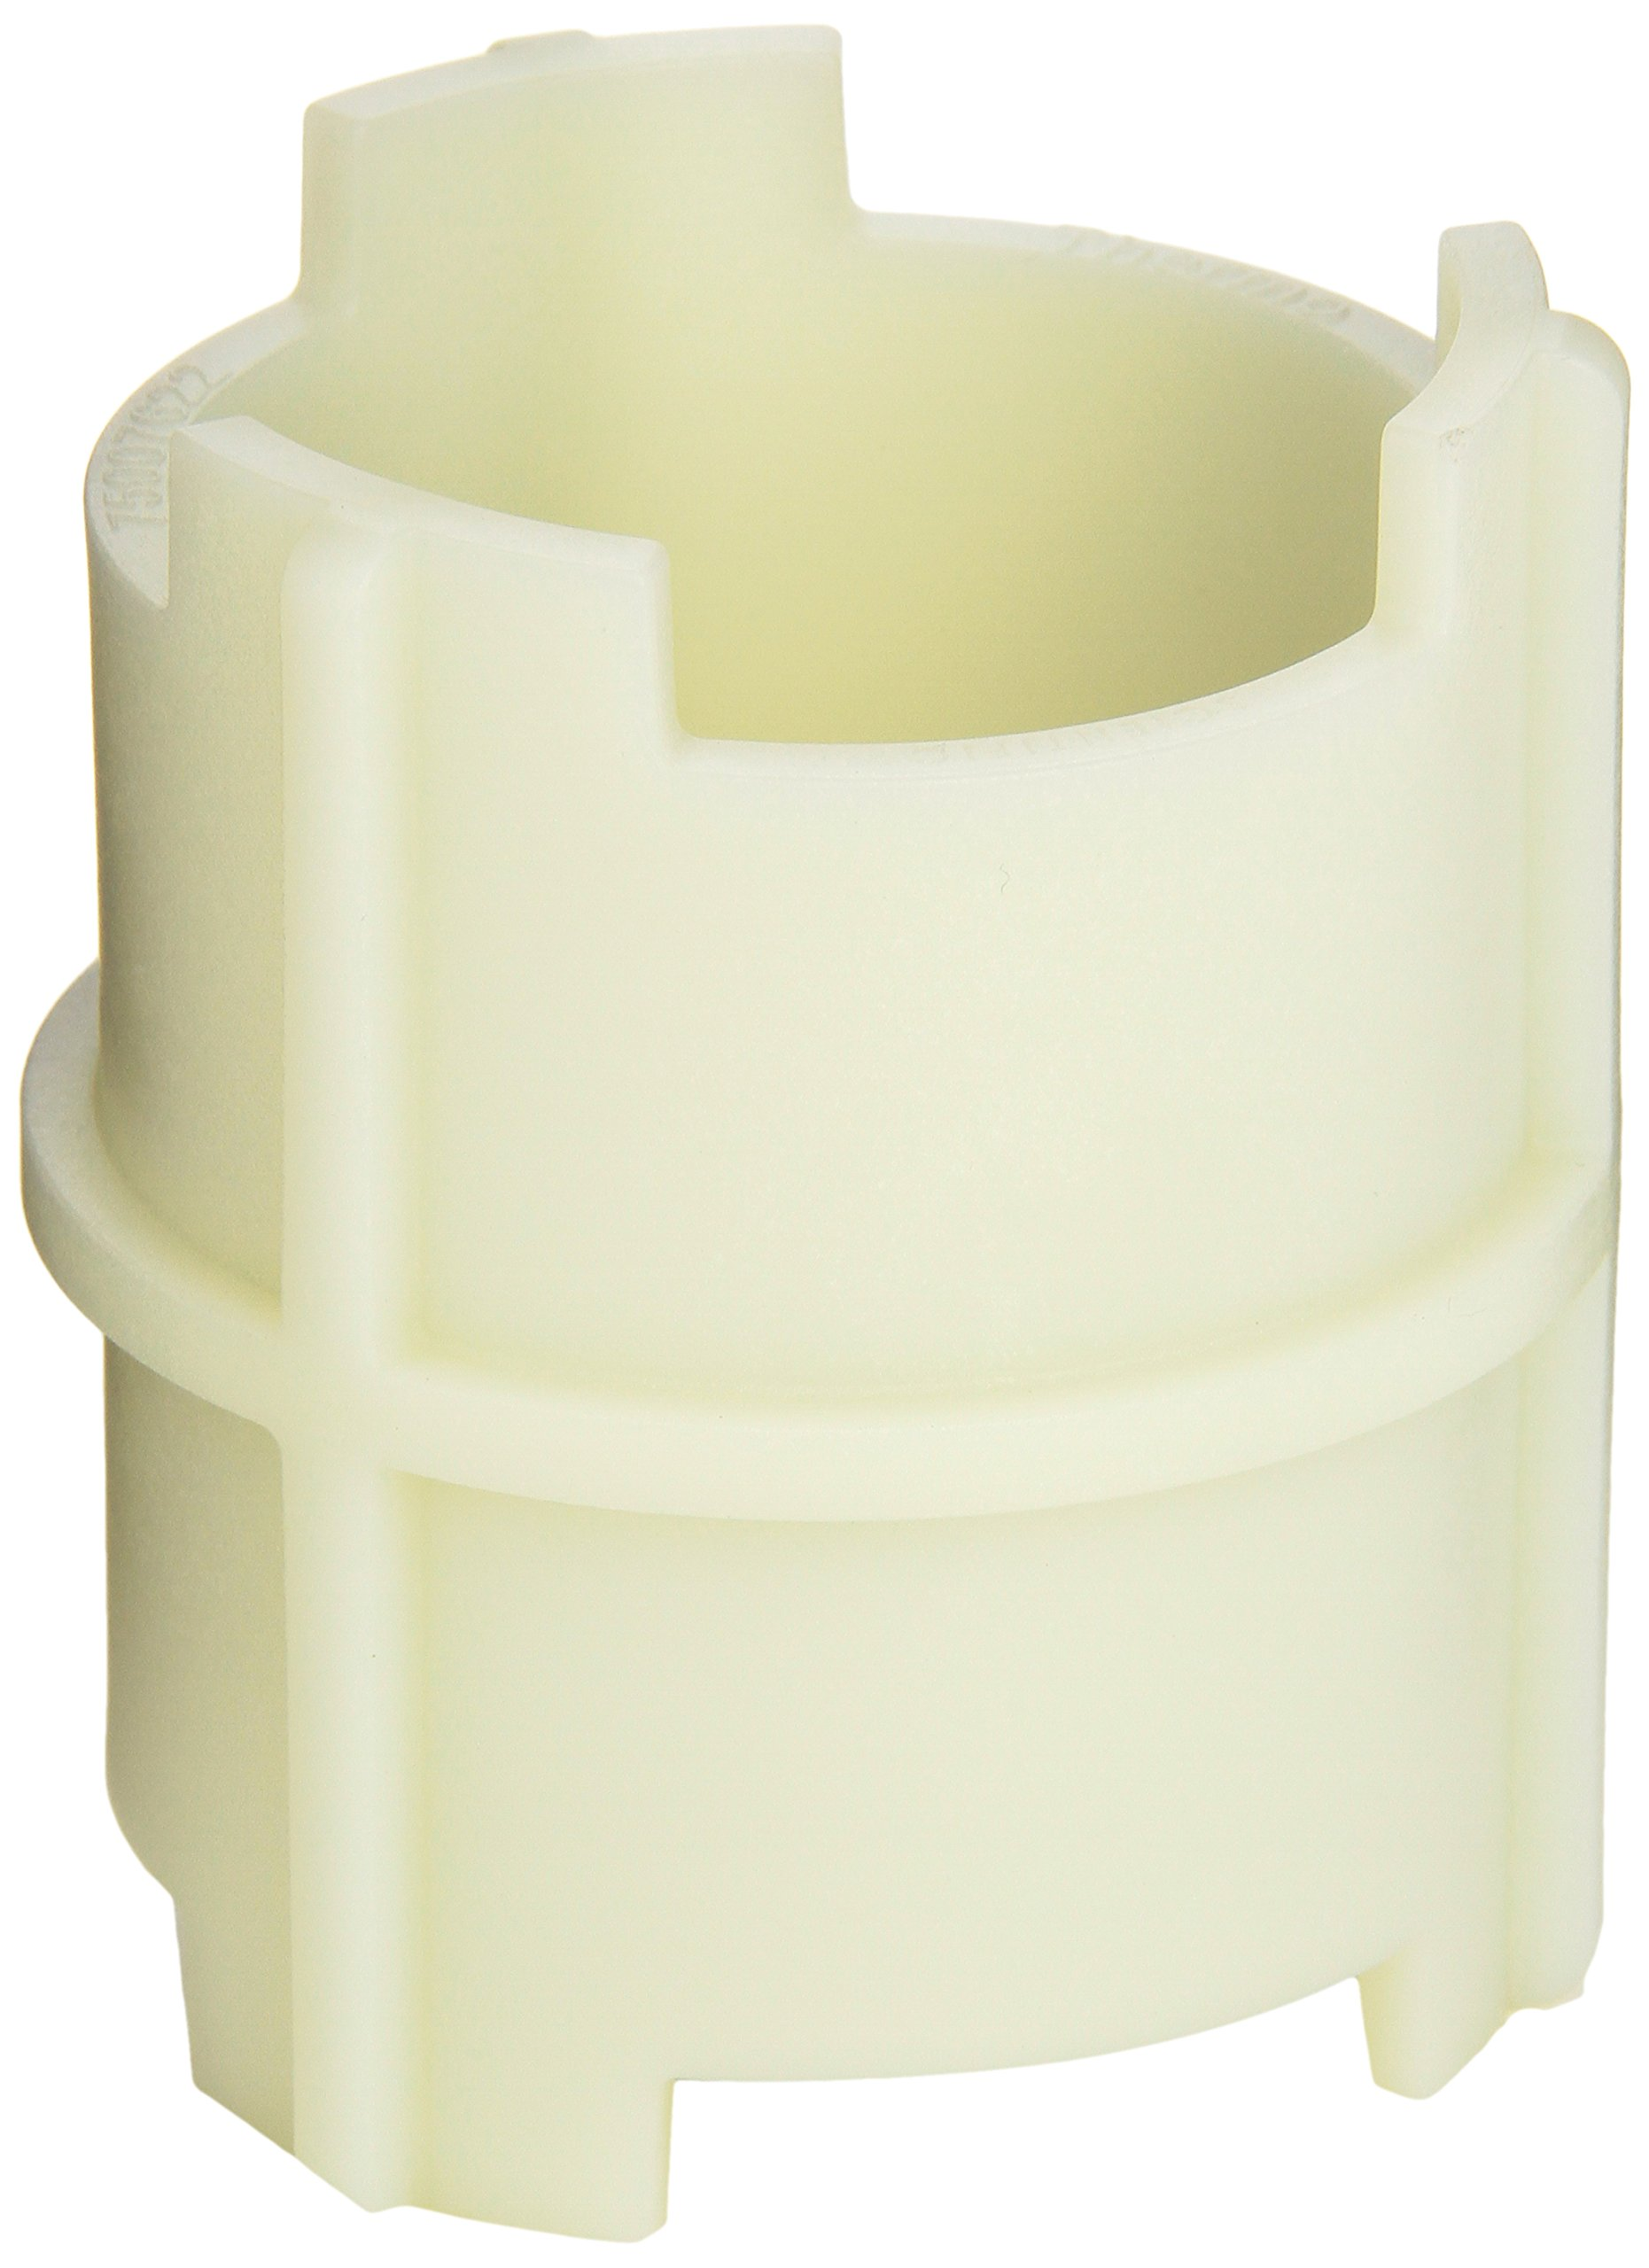 Thermo Scientific 75007622 Rotor Adapter, 4 x 250mL Flat Bottom Bottle, Pack of One